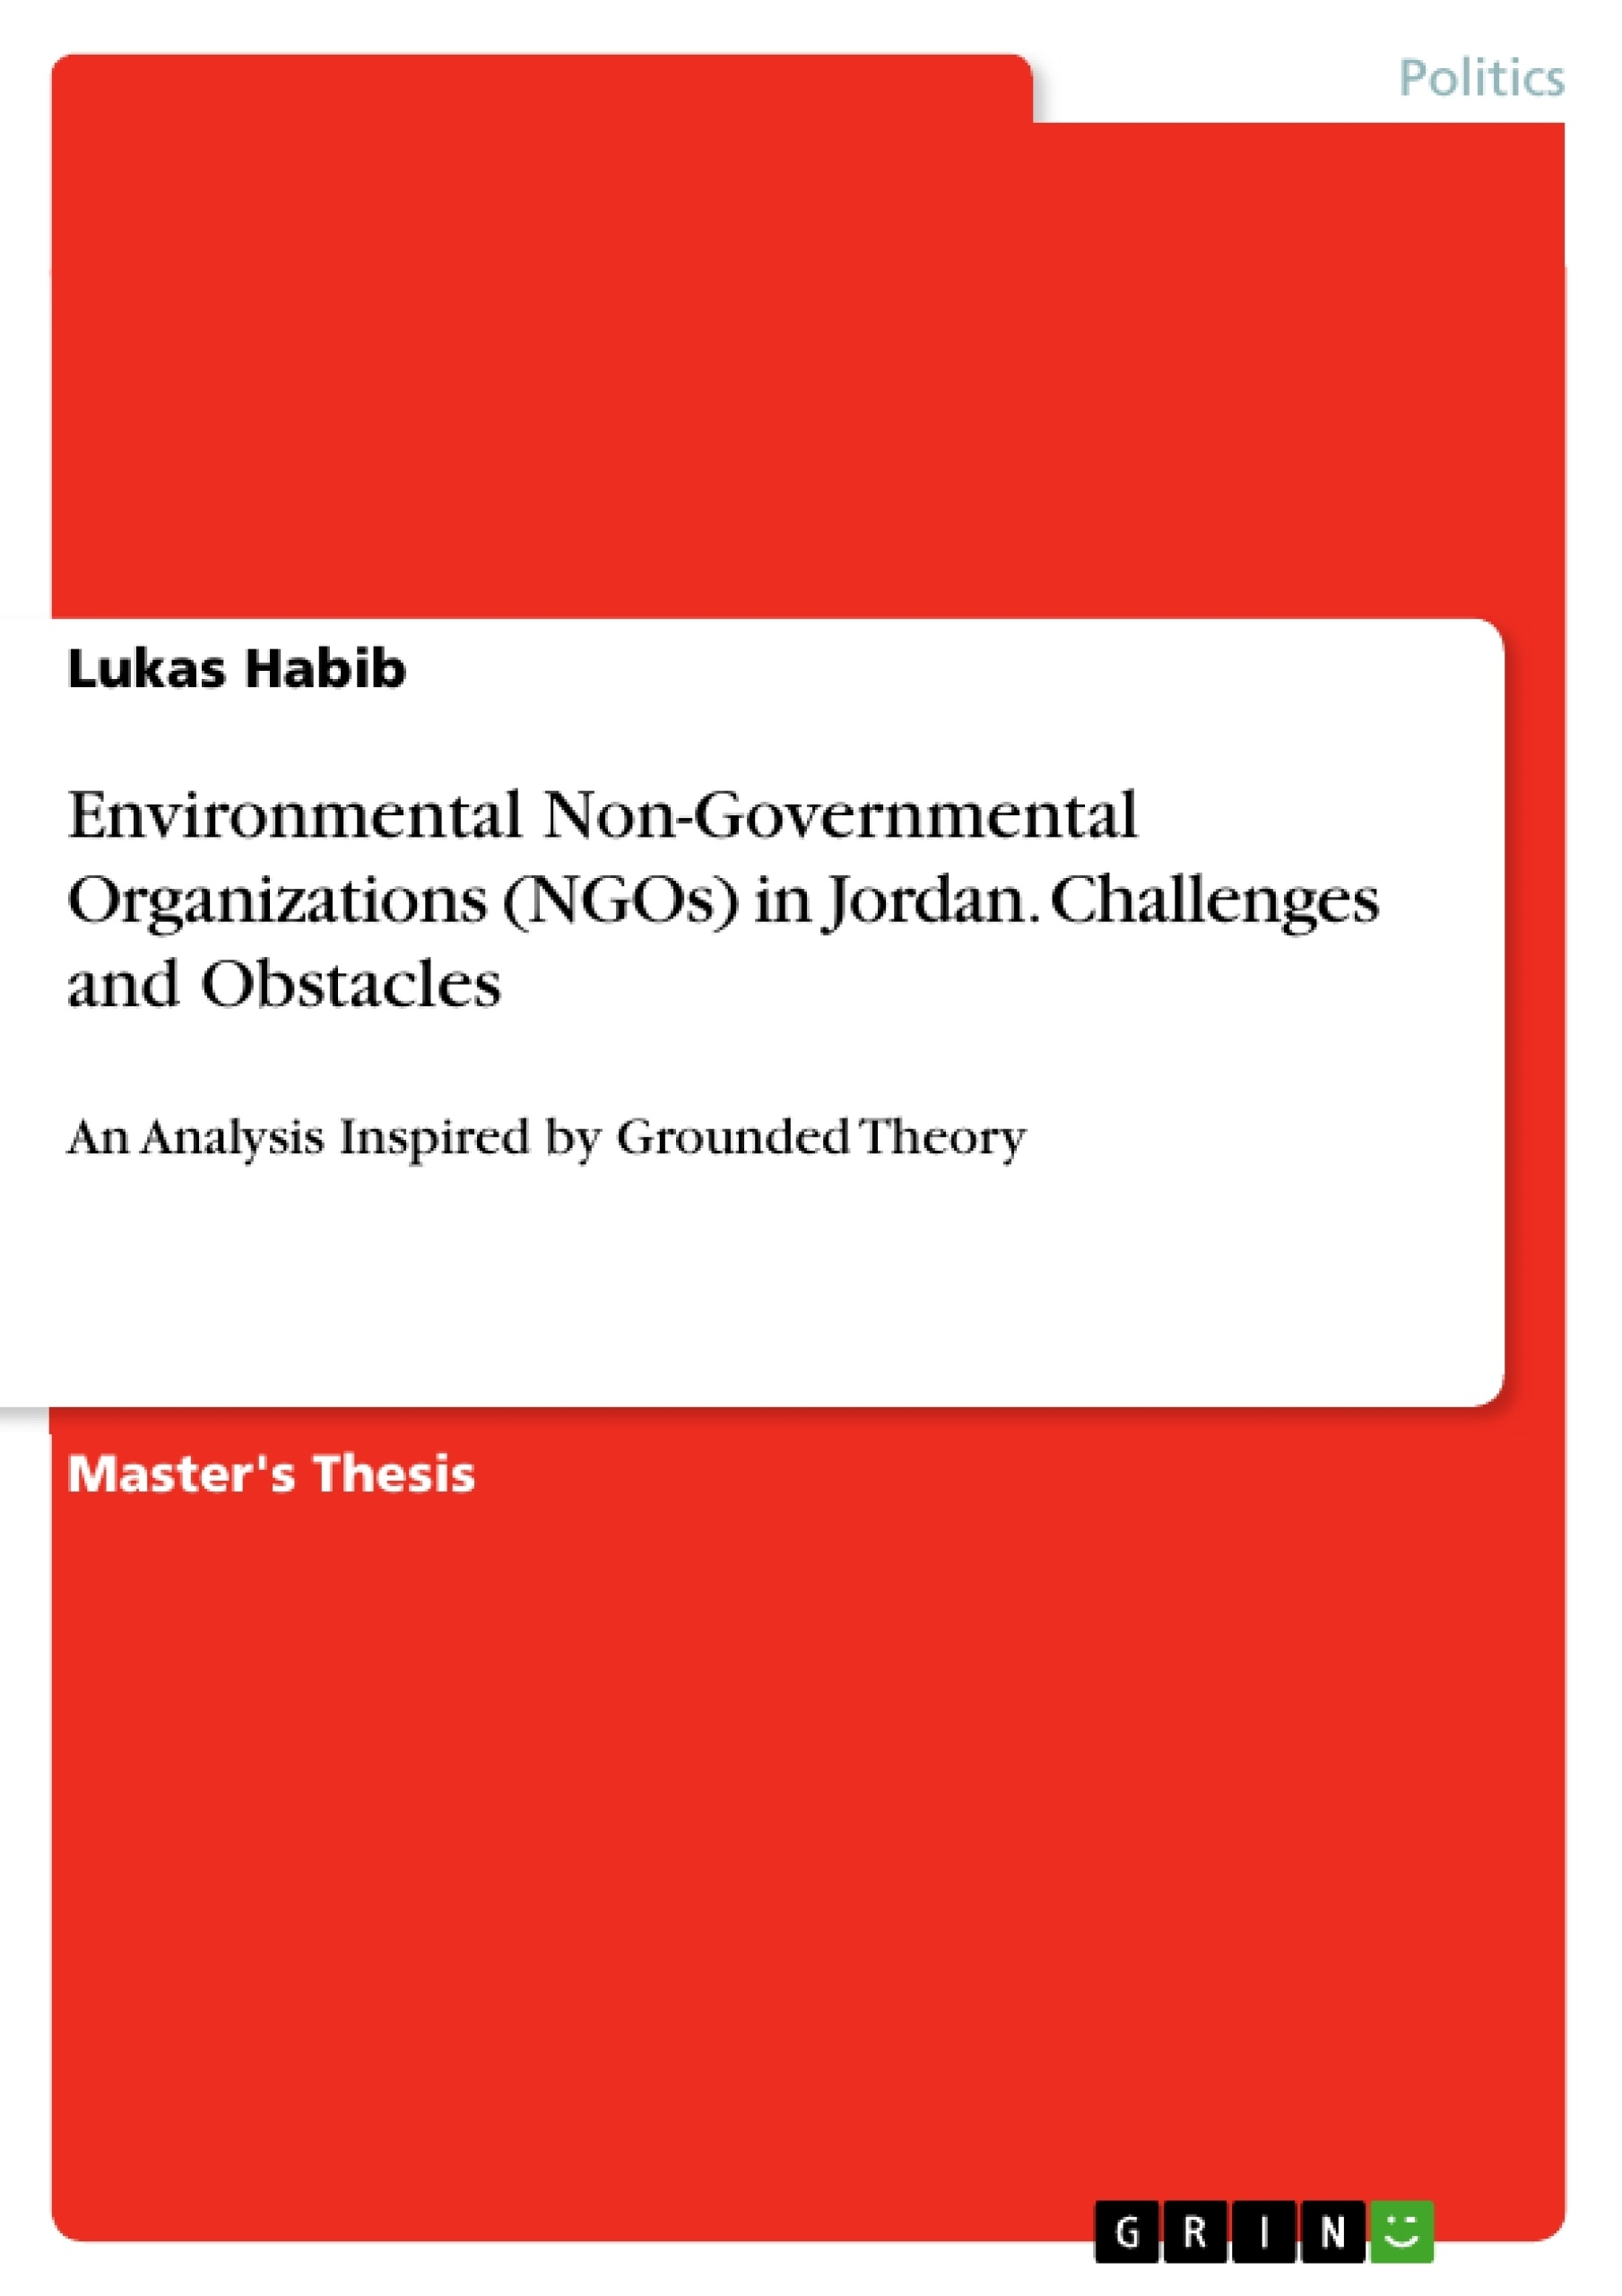 Role of Non-Governmental Organizations (NGO) in Environment Protection